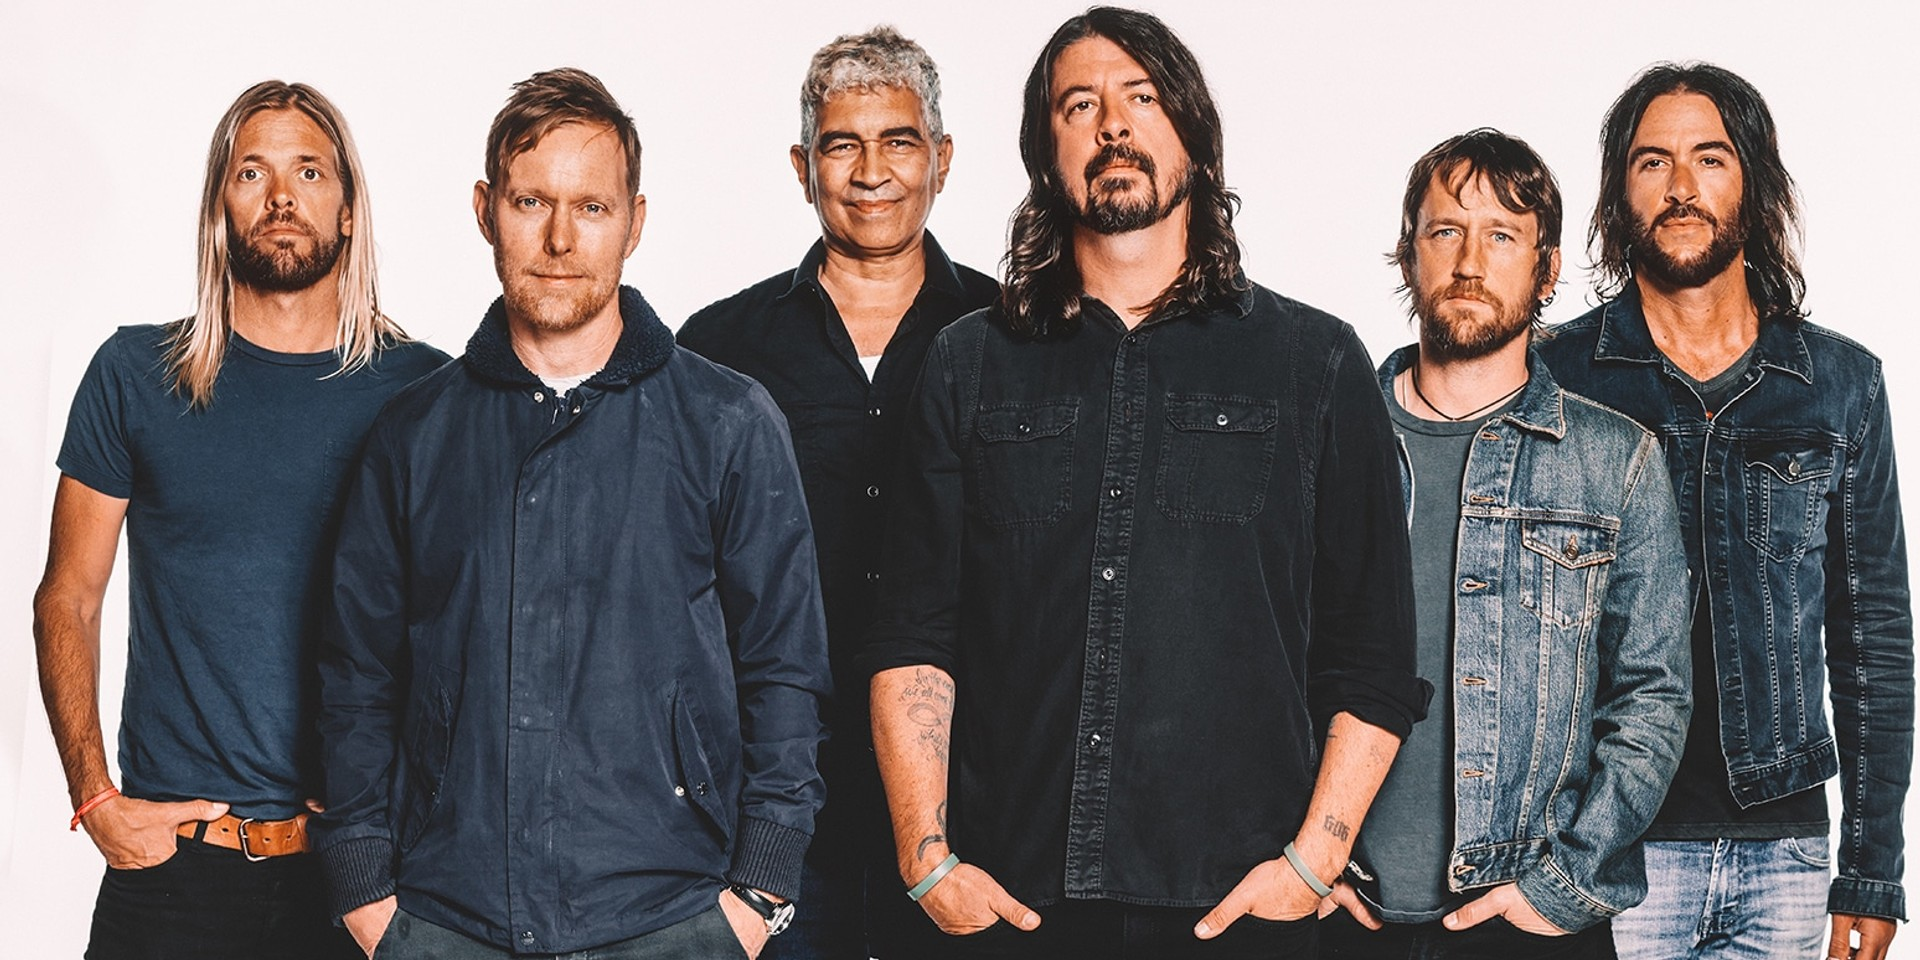 Foo Fighters tease new music, shares update on what to expect for its 25th anniversary